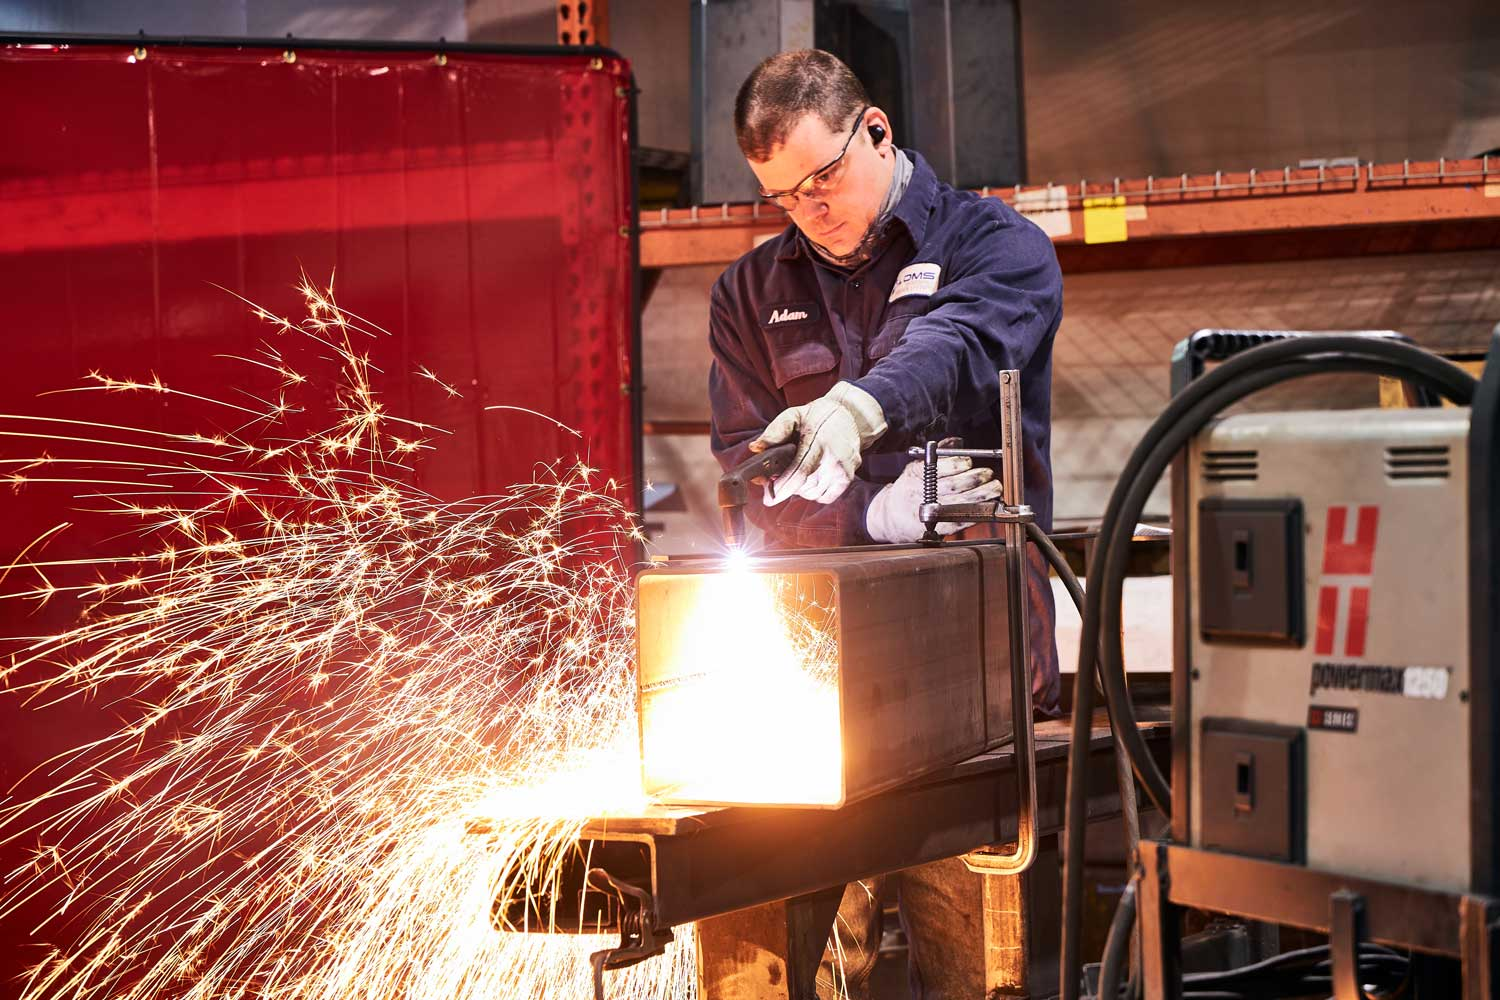 Man welding in DMS uniform with sparks flying